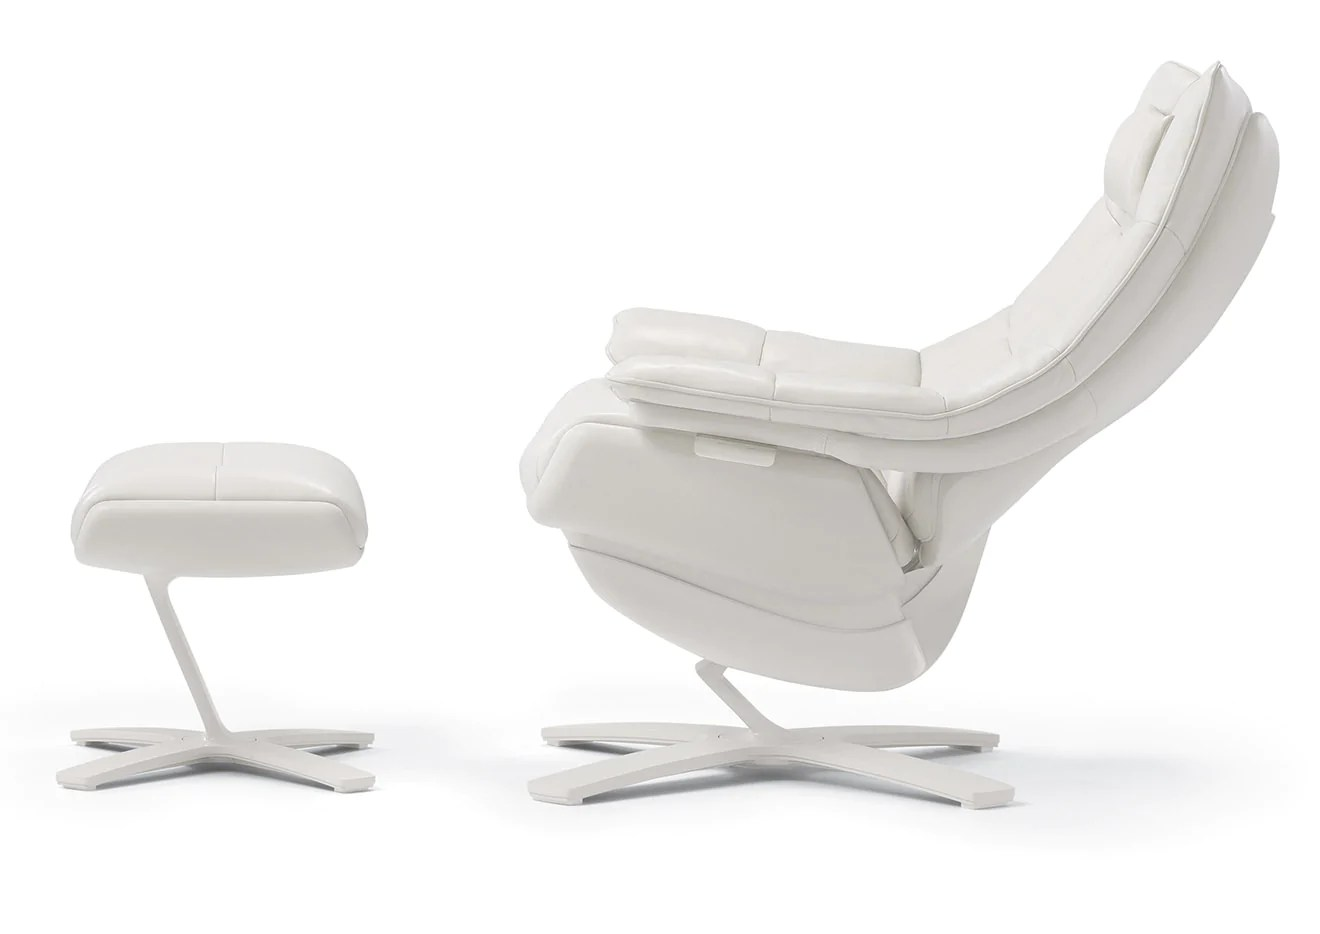 natuzzi revive chair roman situps italian craft revived  martyn white designs